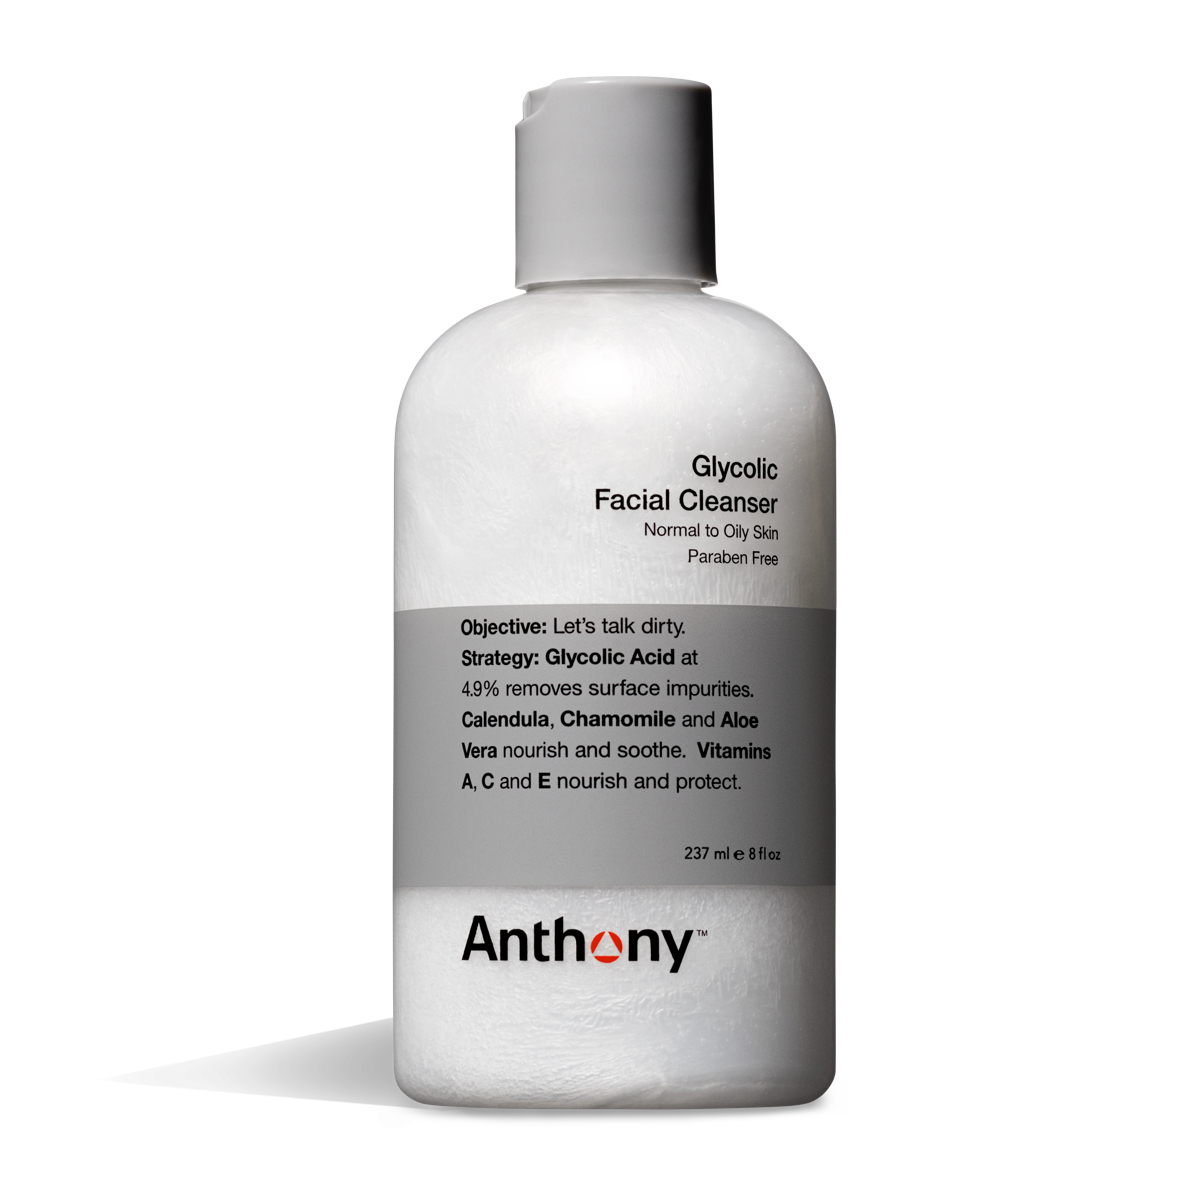 Anthony Glycolic Facial Cleanser Gesichtsreinigung